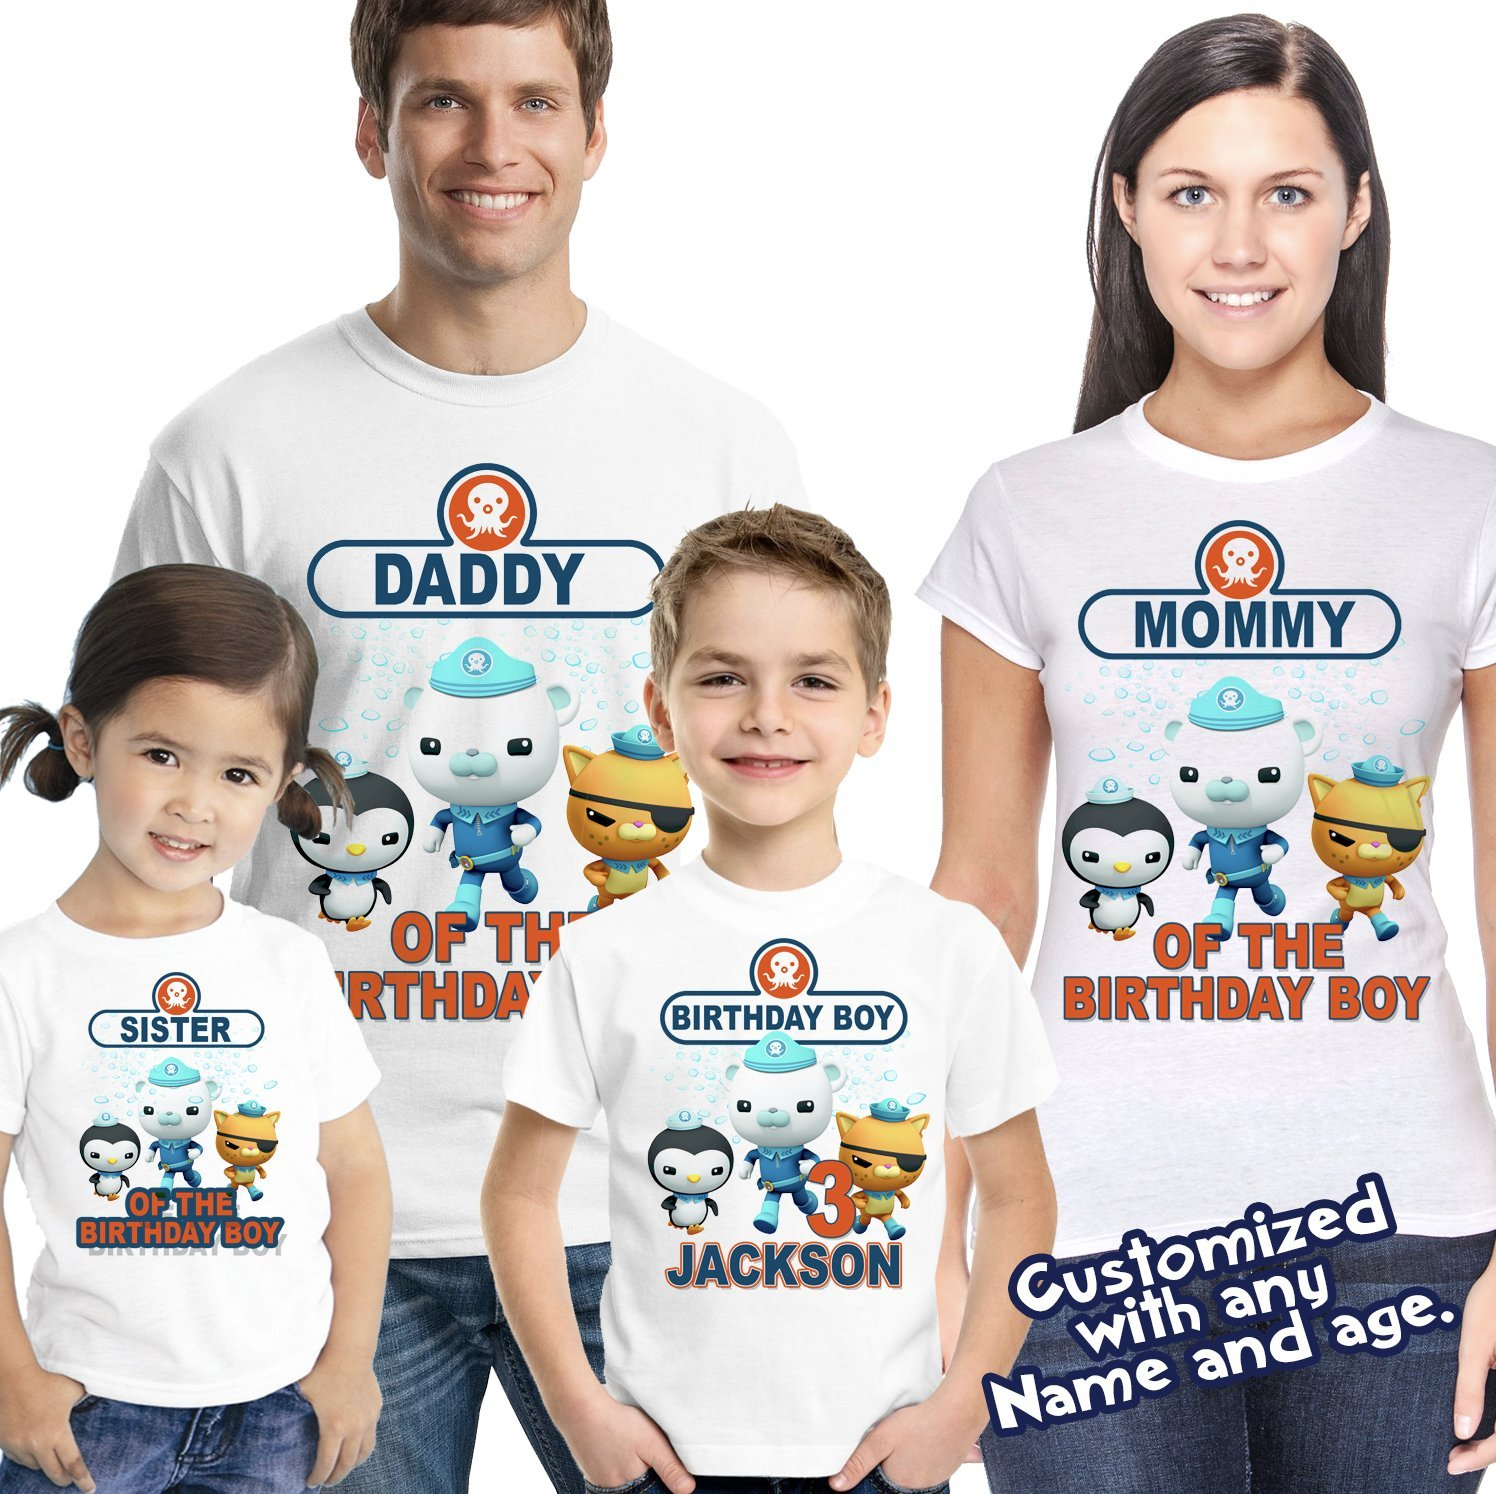 Octonauts Birthday Shirt. Personalized Birthday Shirt with Name and Age, Personalized Captain Barnacle Birthday TShirt, Octonauts Party